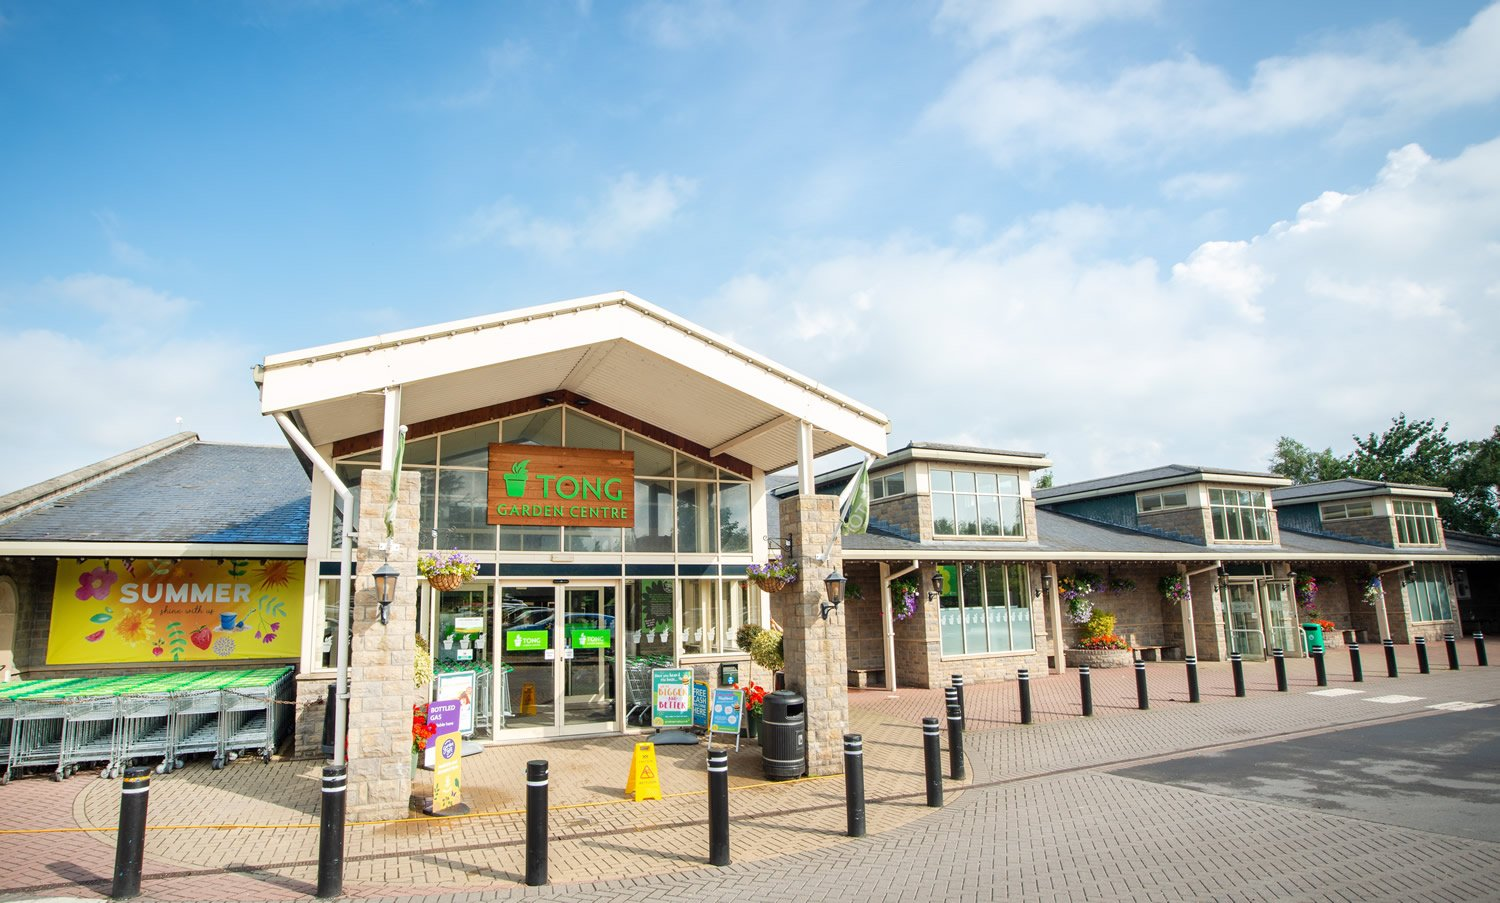 Tong Garden Centre Attraction Bradford West Yorkshire Welcome To Yorkshire